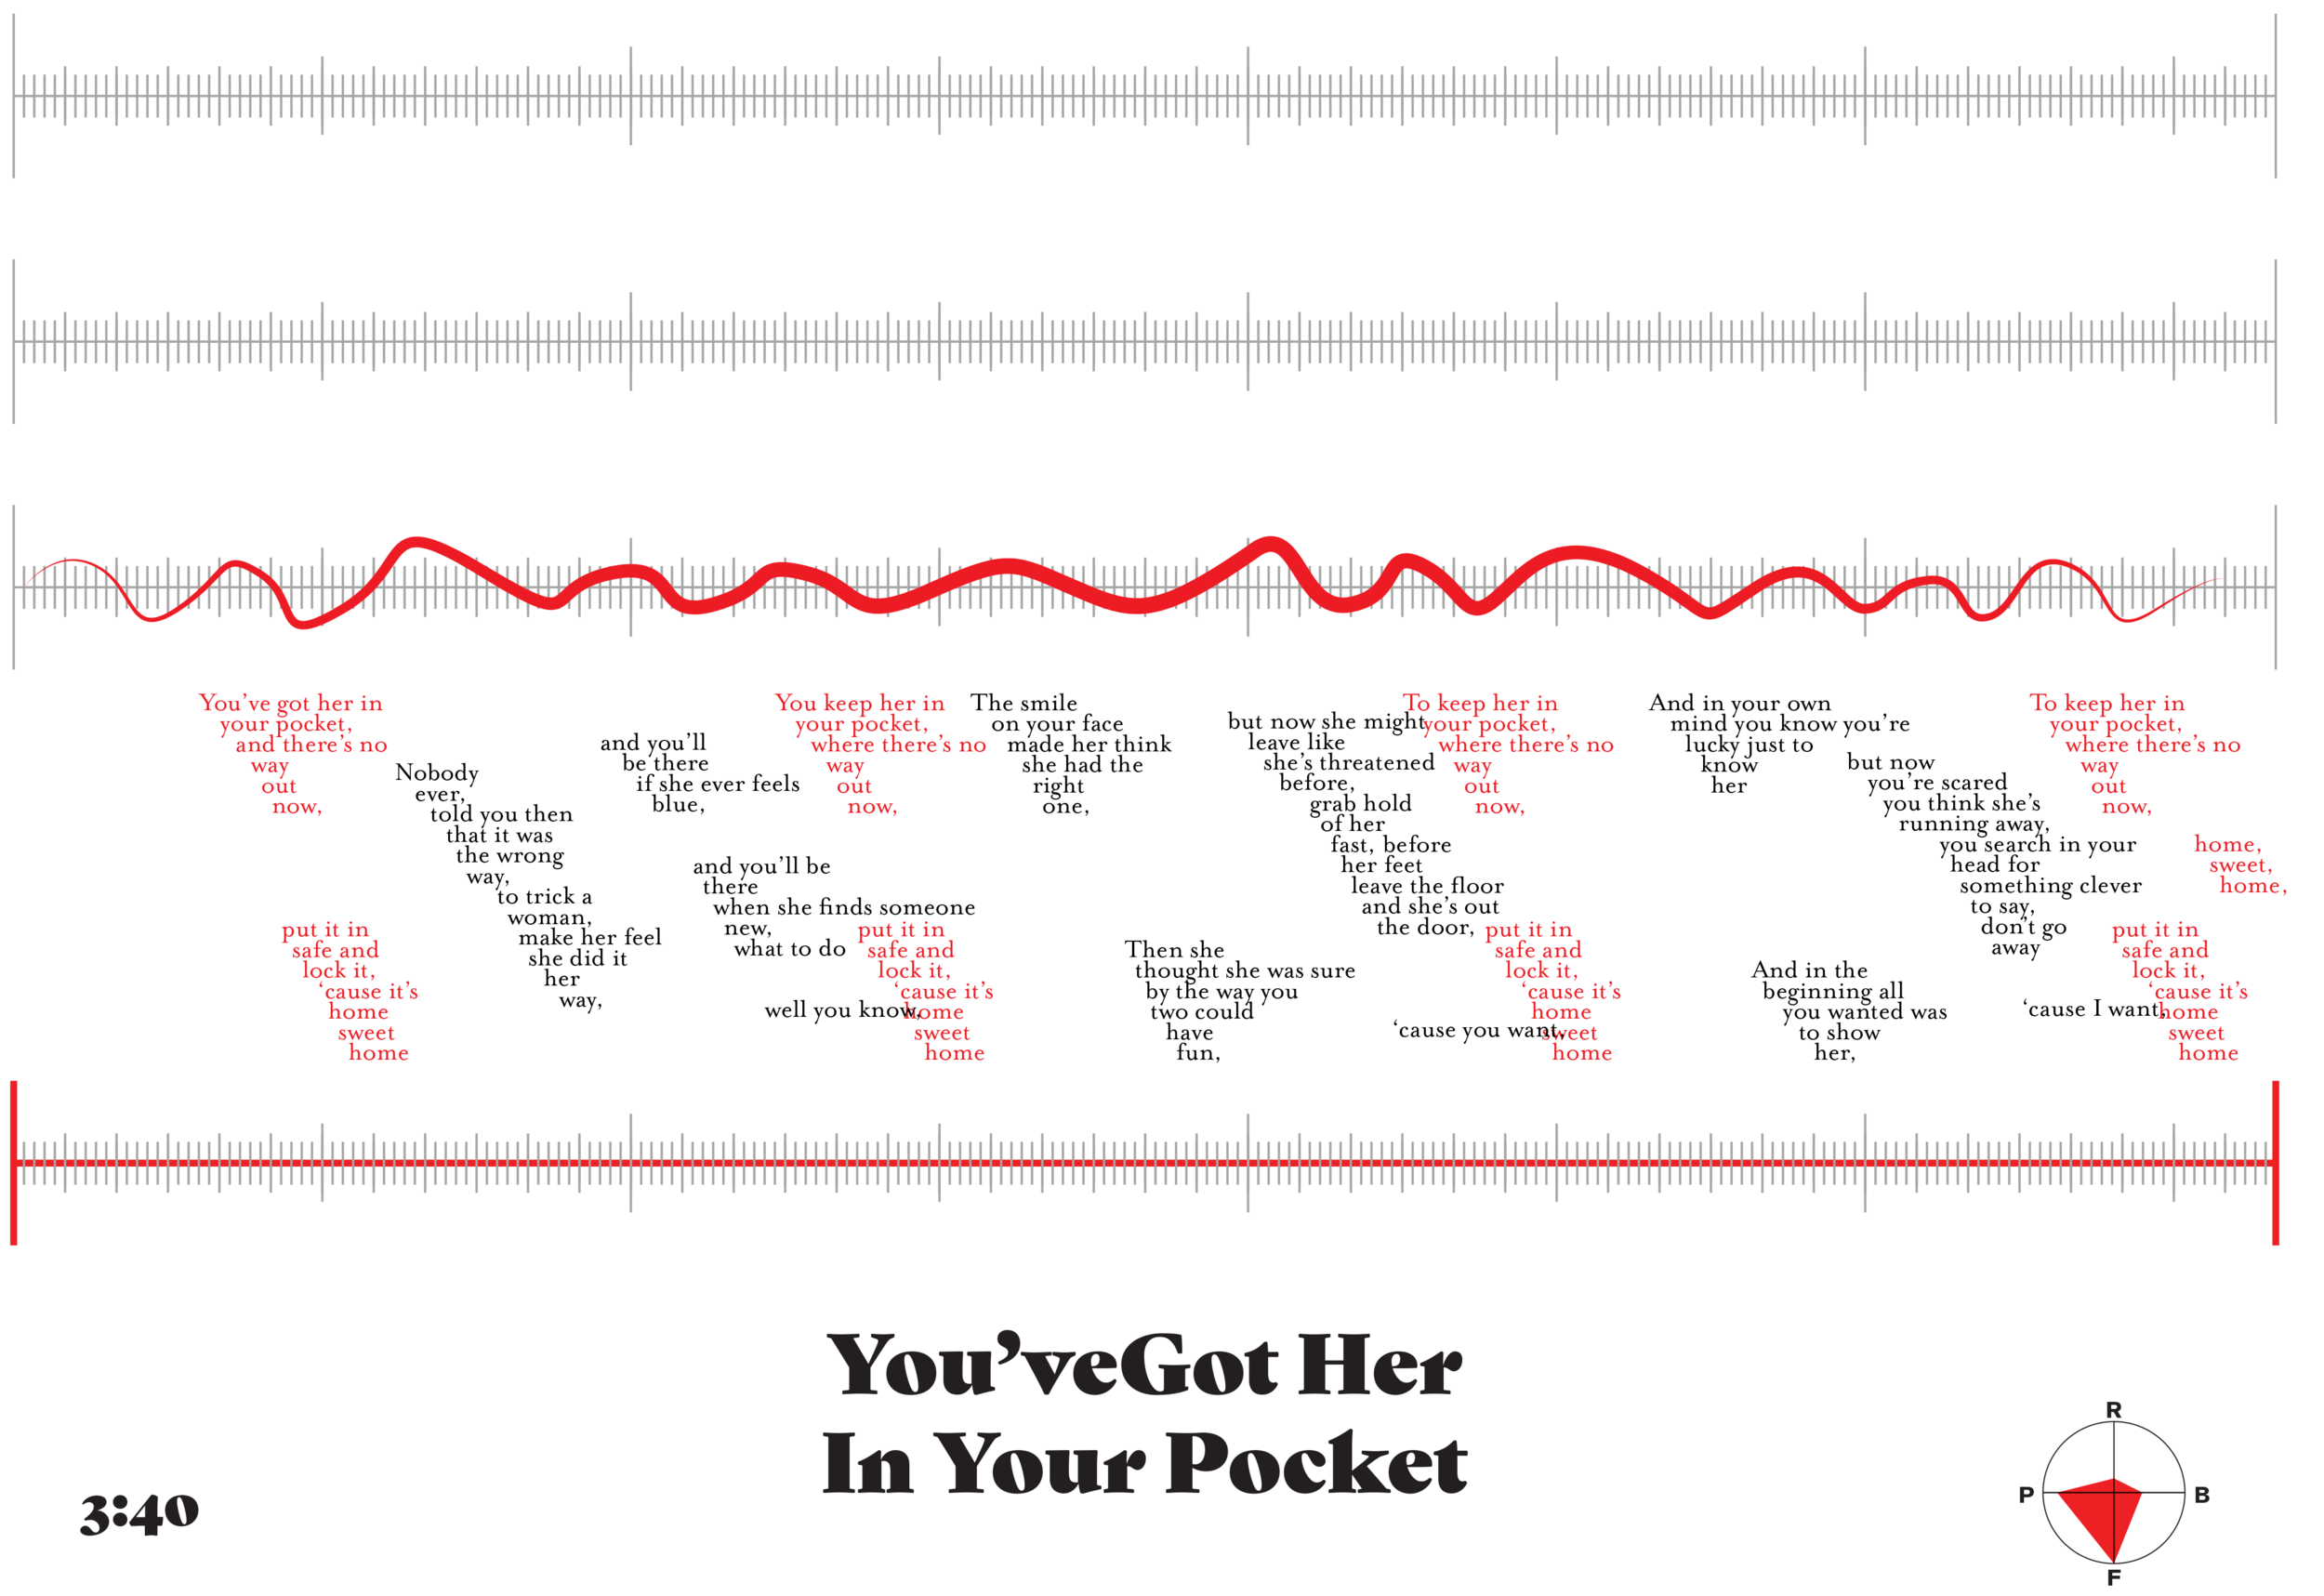 07 - You've Got Her In Your Pocket.png